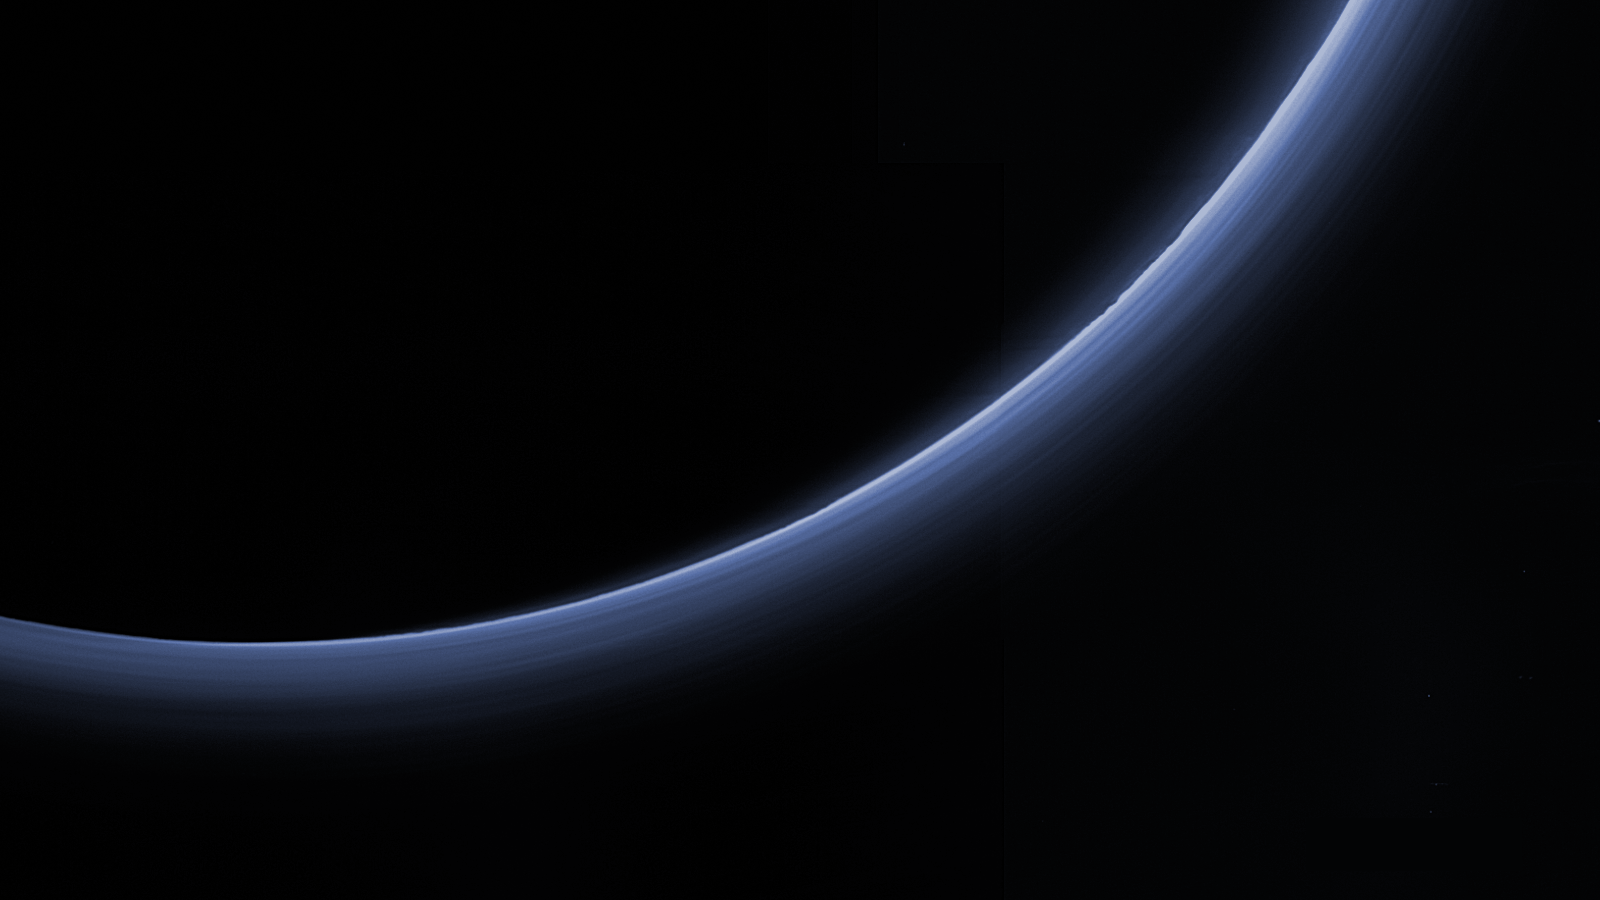 Does Pluto Have an Atmosphere?